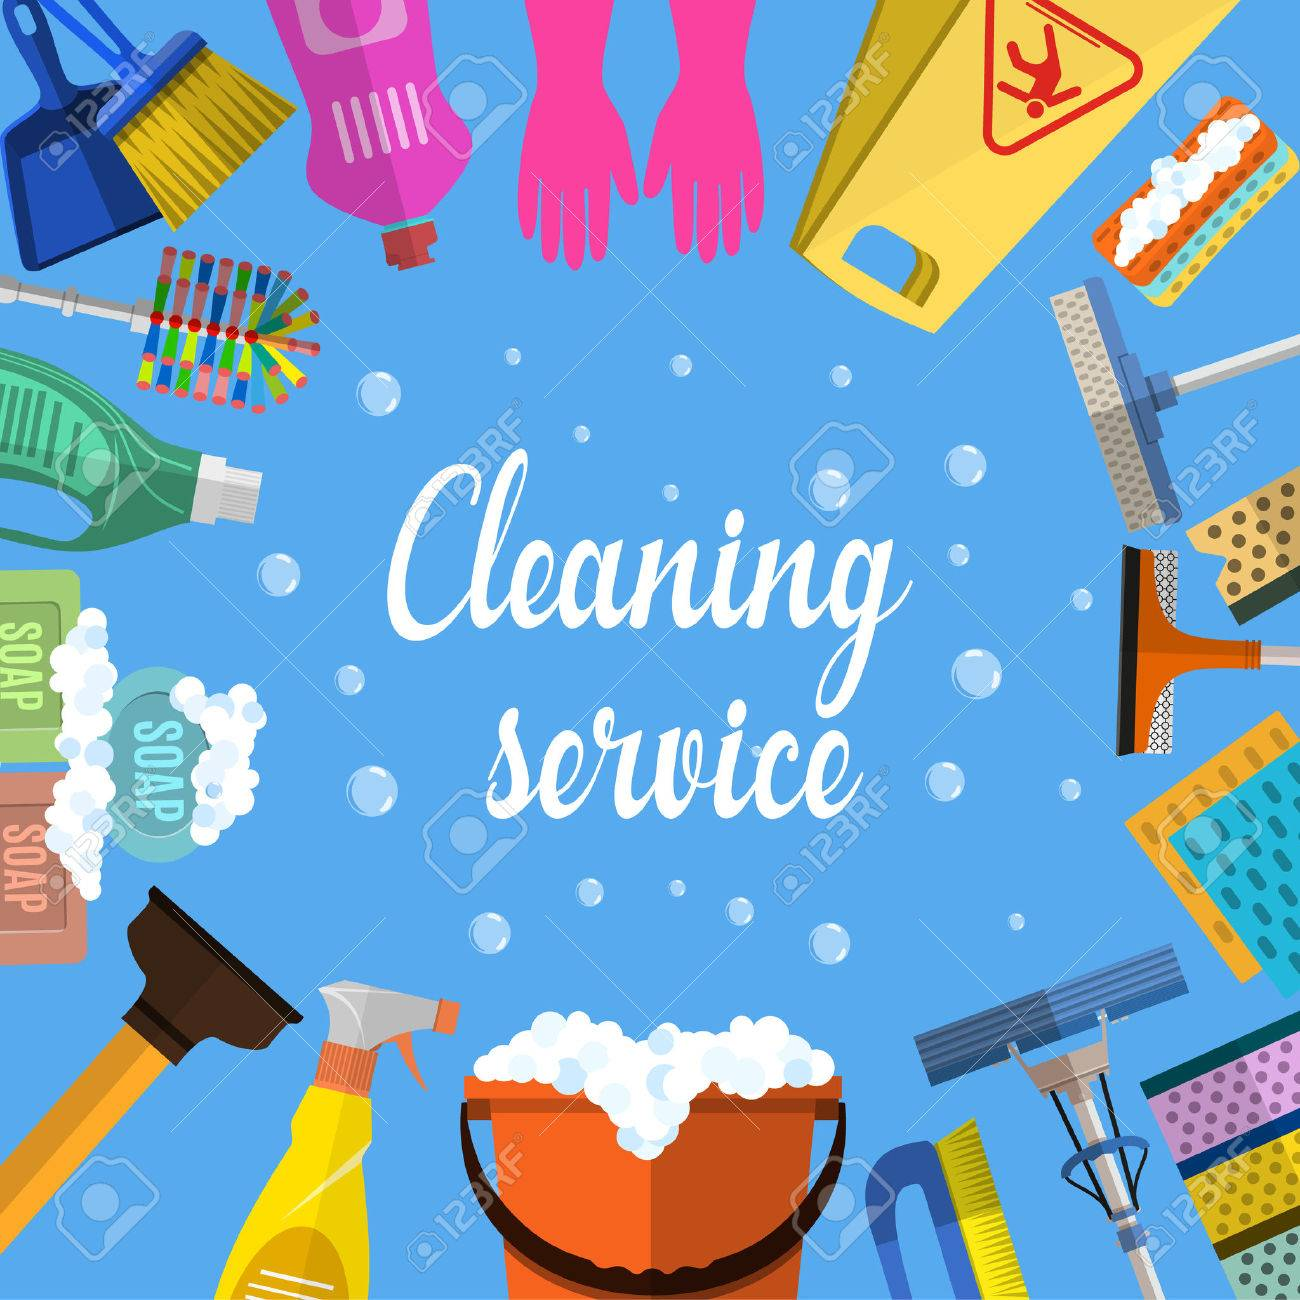 cleaning service flat illustration poster template for house cleaning service flat illustration poster template for house cleaning services various cleaning tools